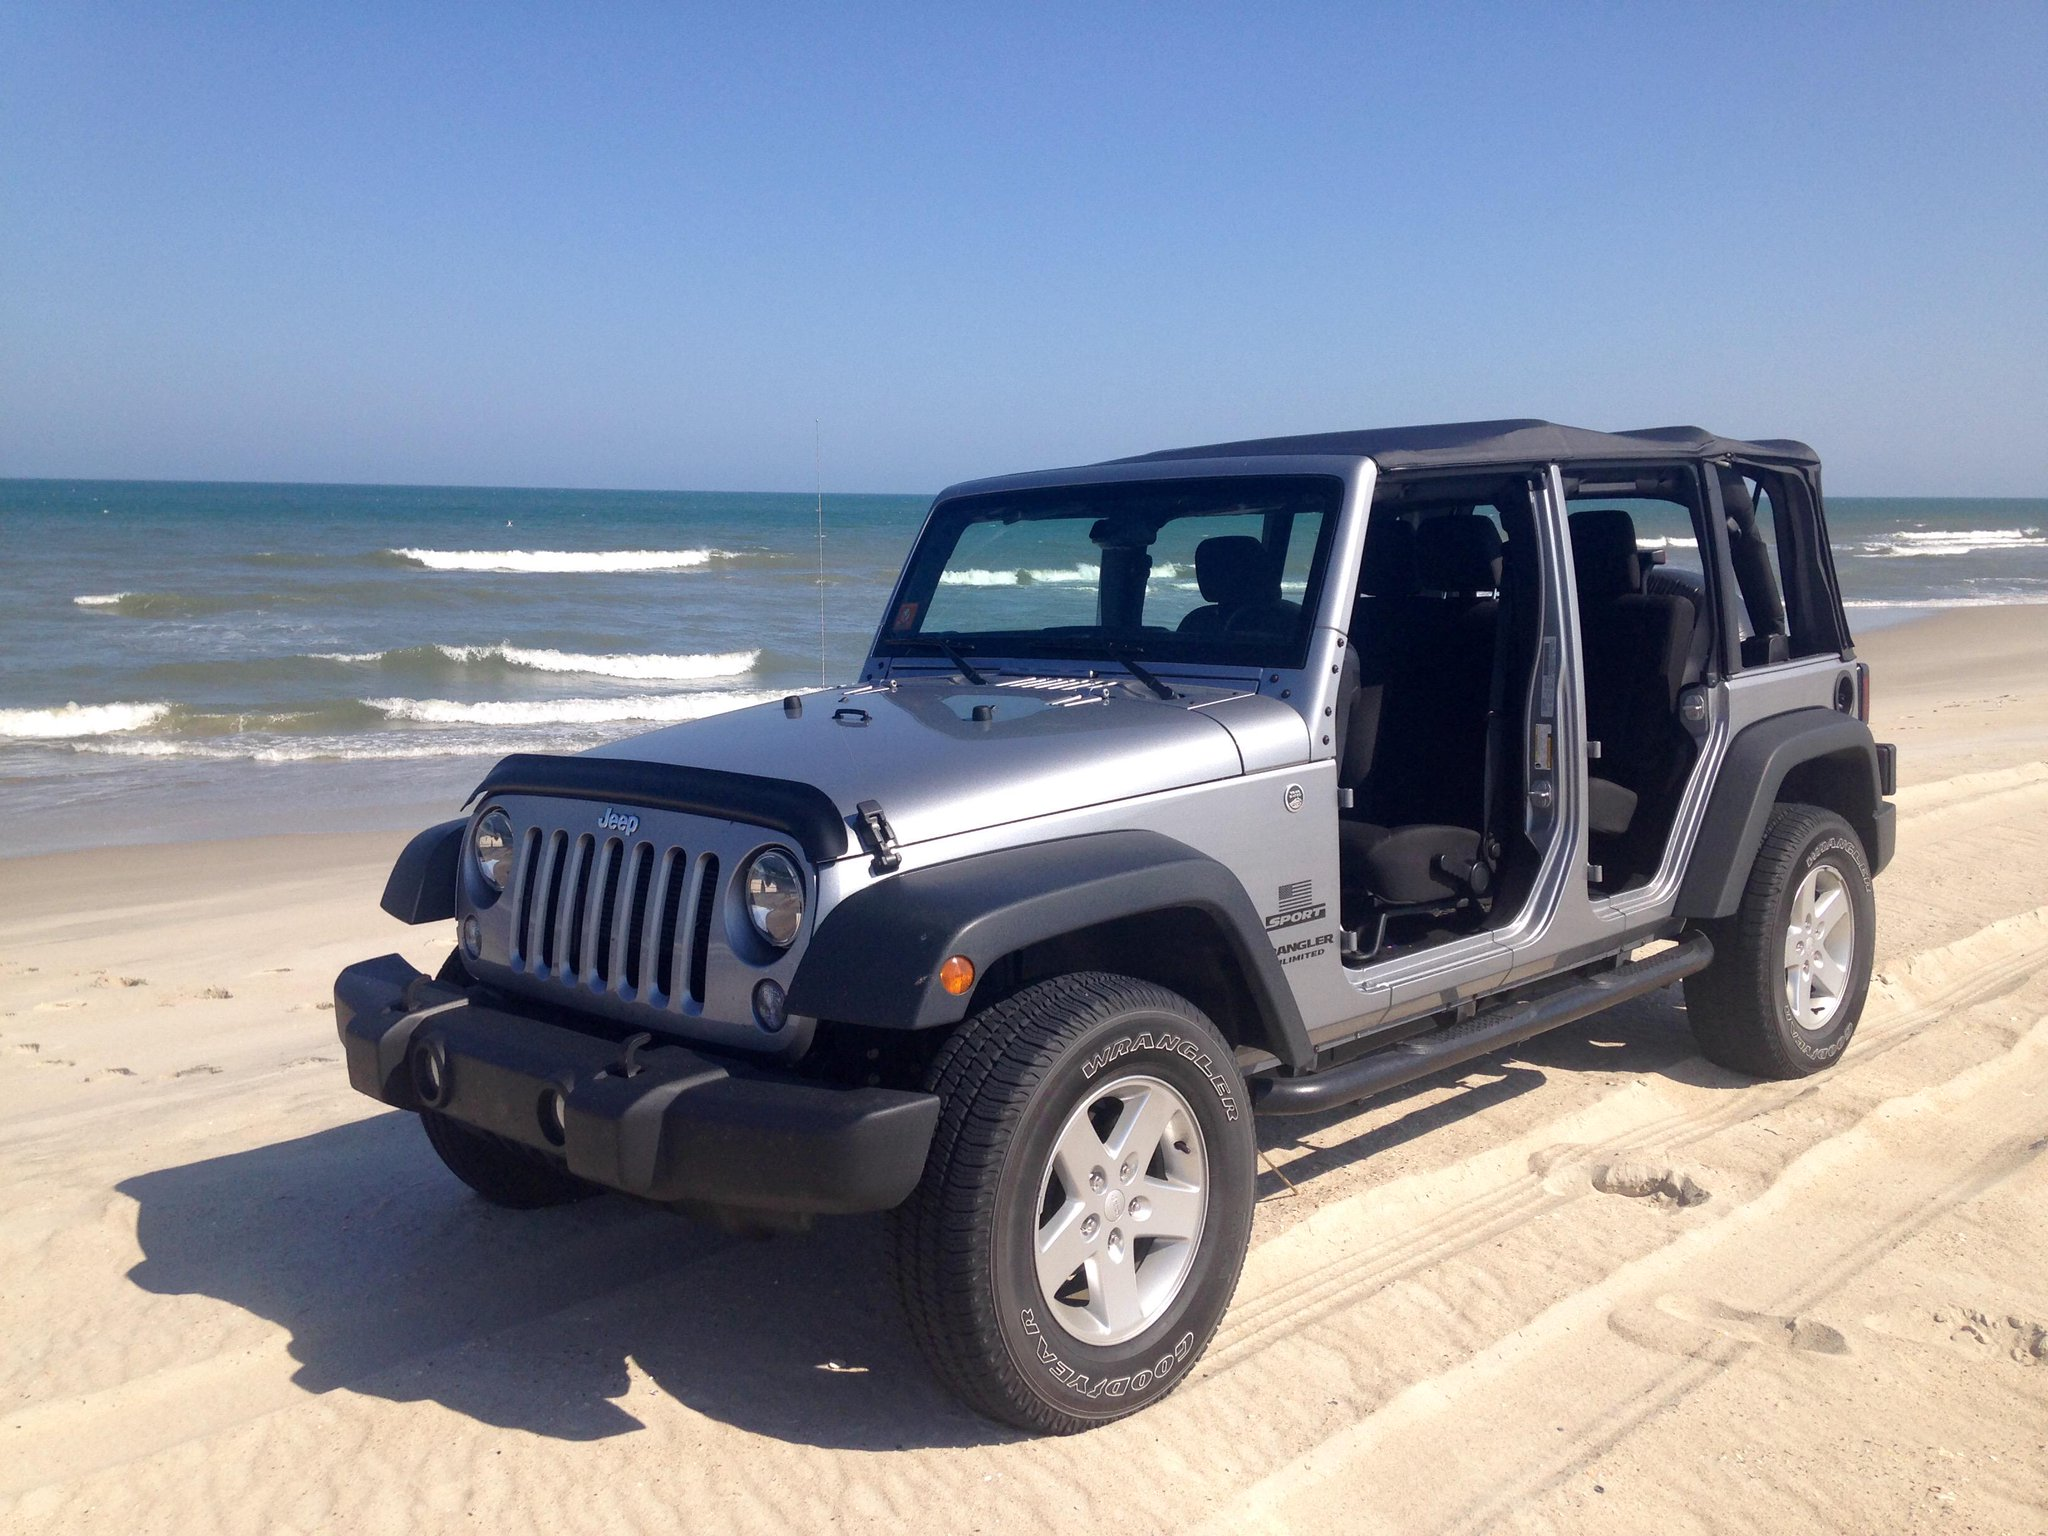 You know it is a beach day when the doors are off. #WranglerWednesday (Photo cred: Andrew R). http://t.co/Mg88ce96YQ